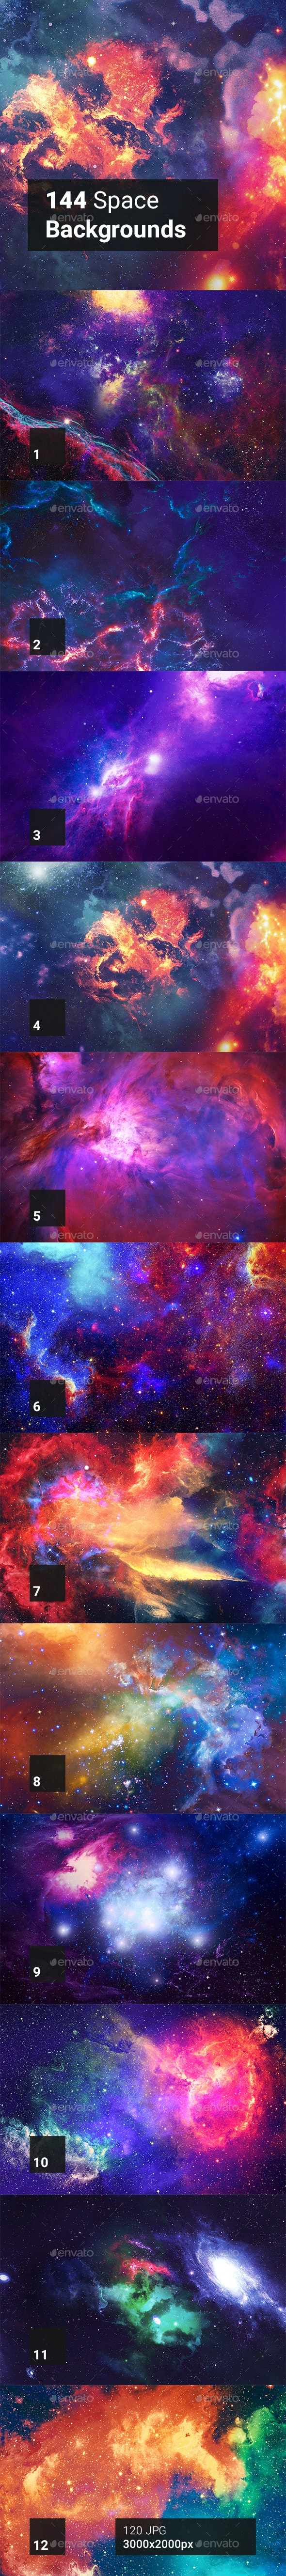 144 Space Backgrounds - Abstract Backgrounds